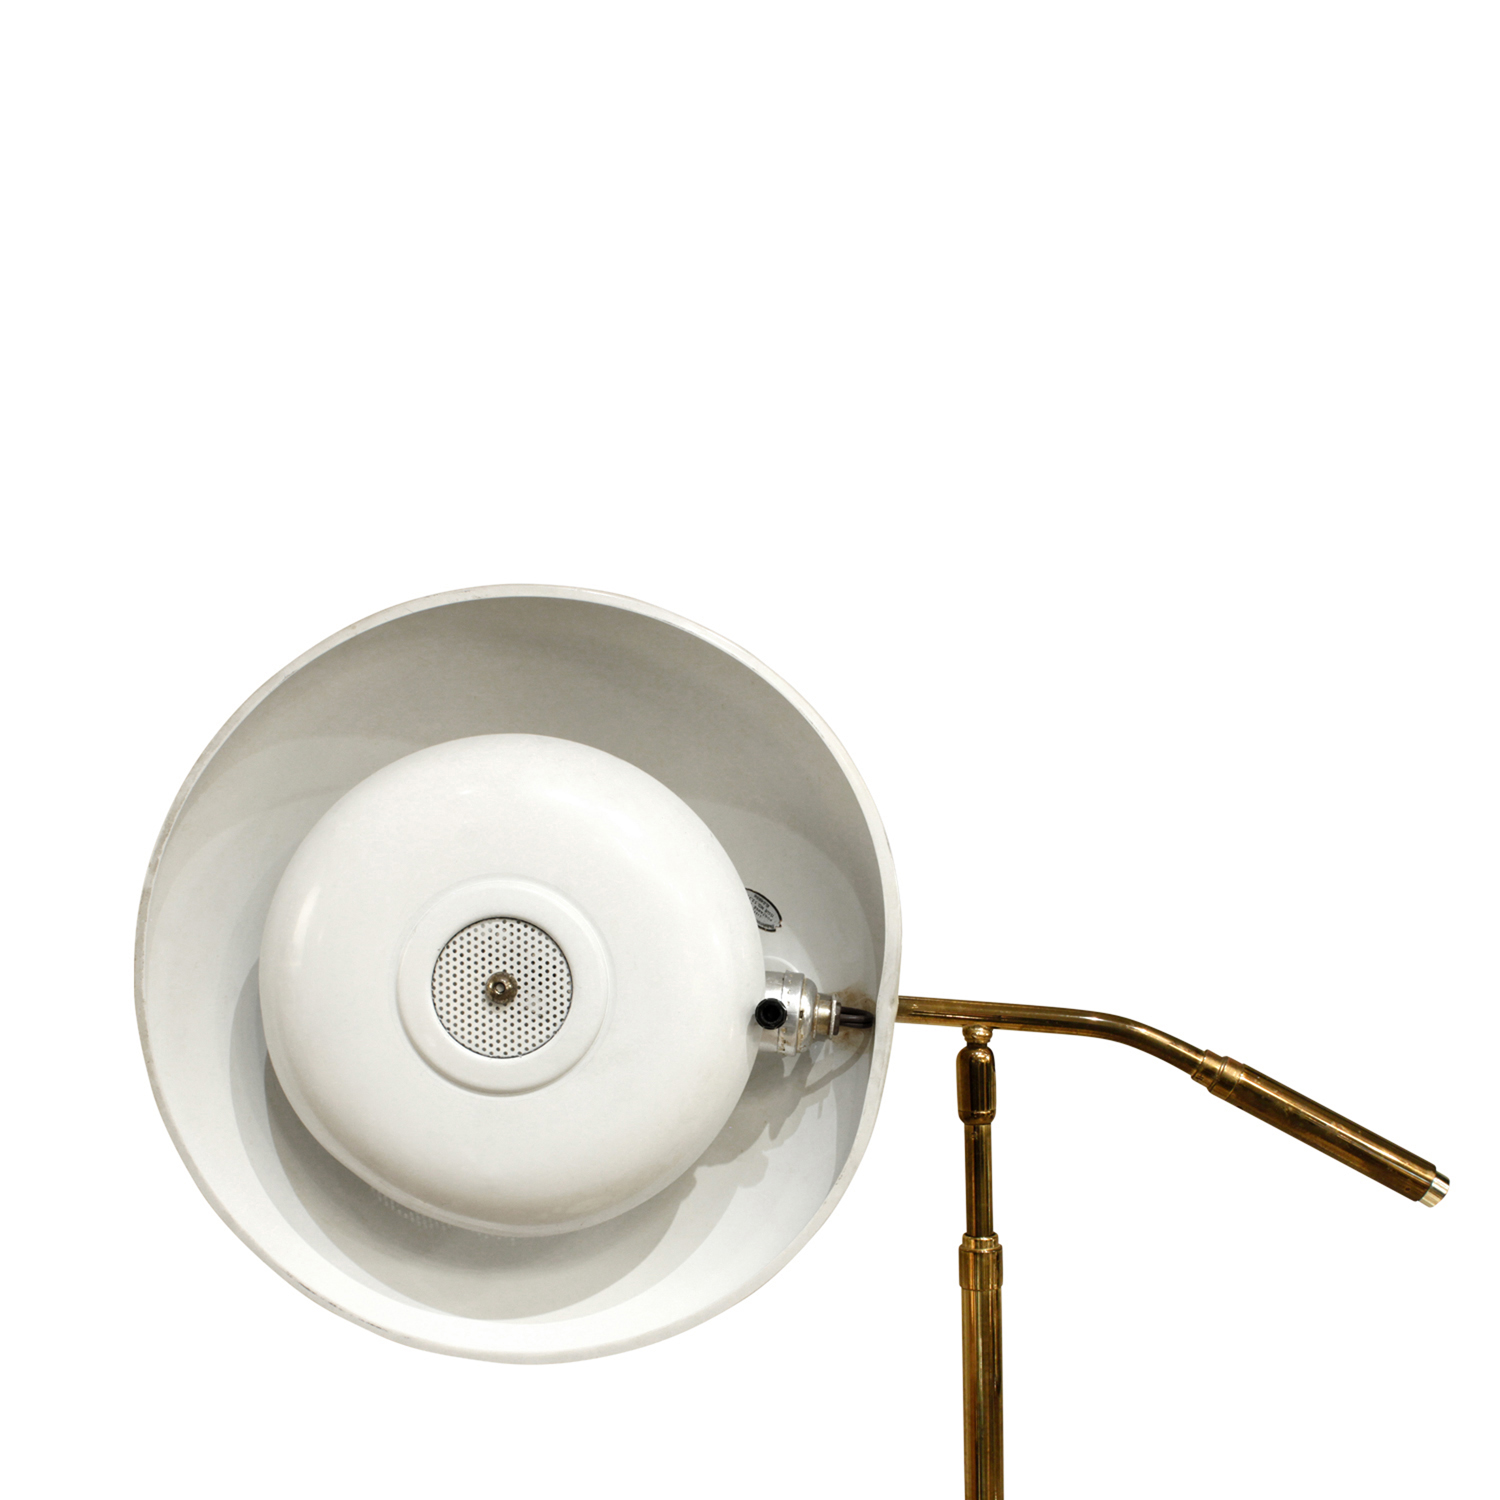 Lightolier 35 brass+ivory lqr floorlamp174 top under light.jpg